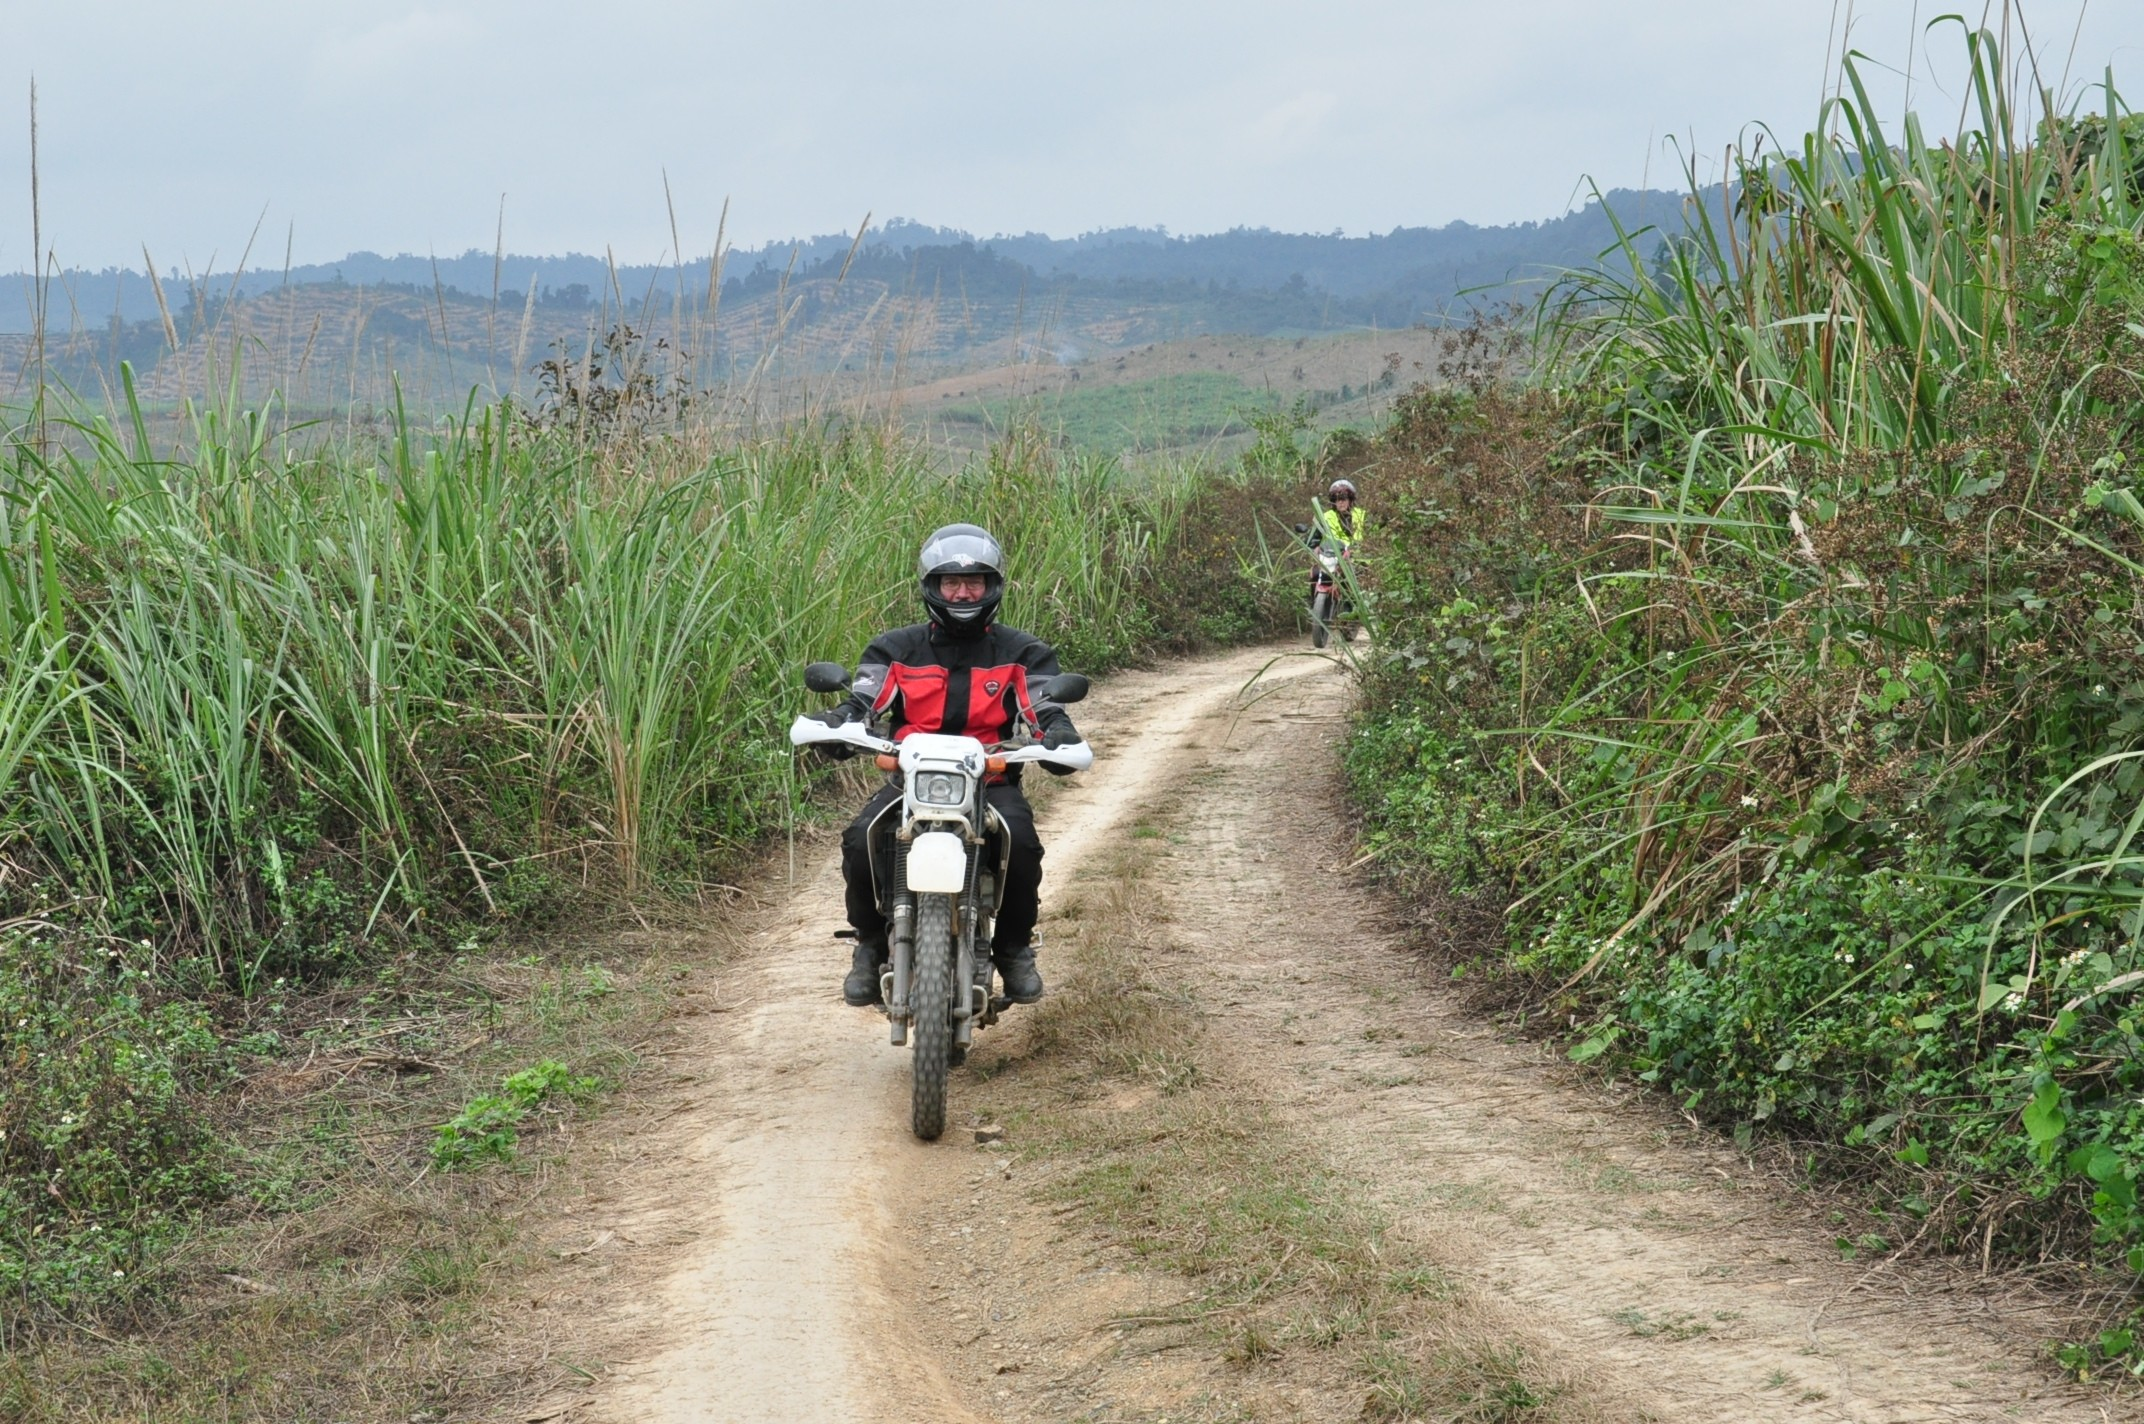 ESSENTIAL NORTHERN VIETNAM OFFROAD MOTORBIKE TOUR